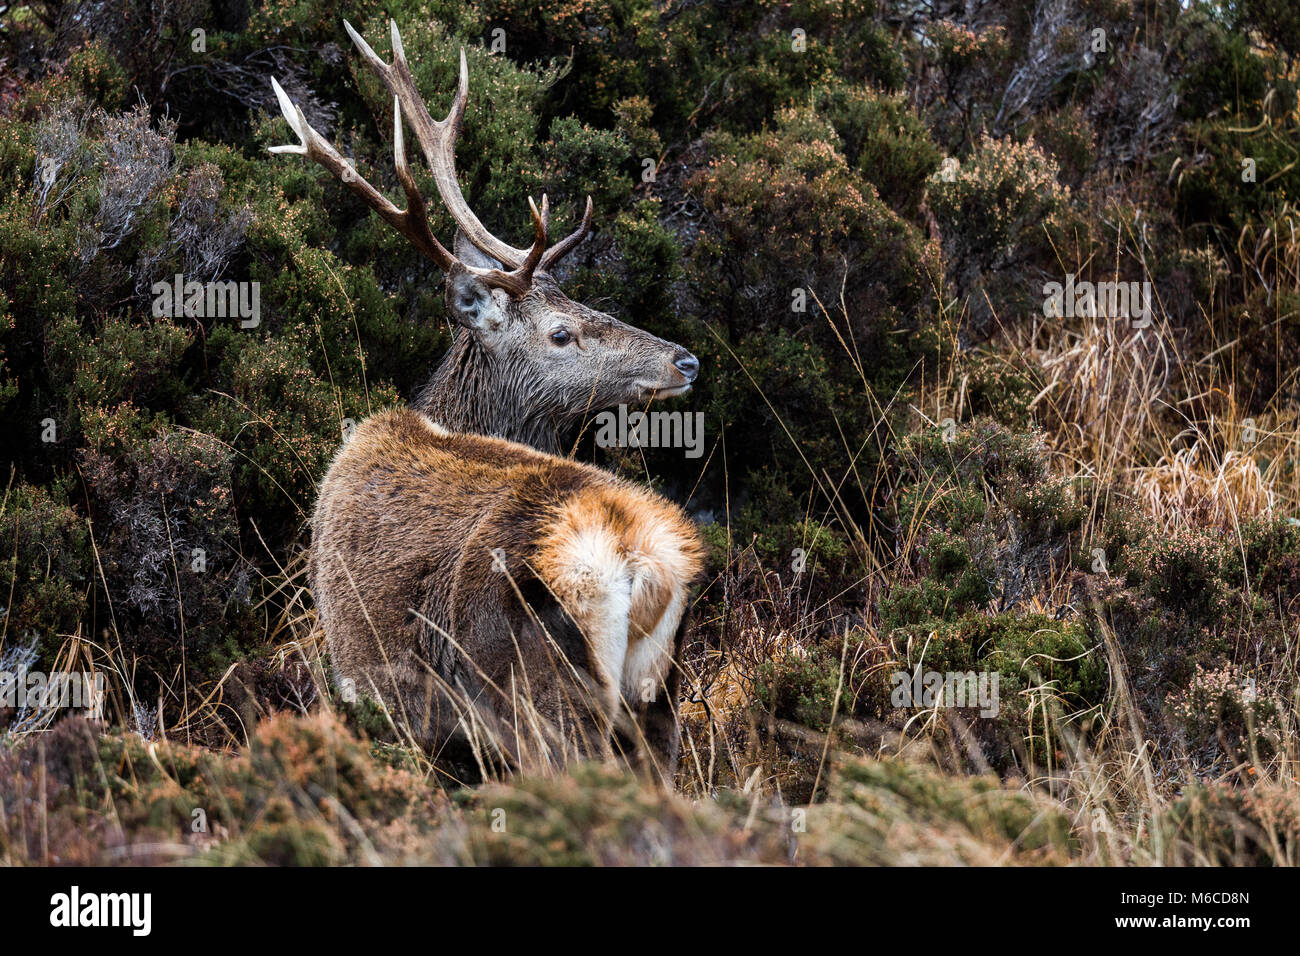 Red Deer stag, Applecross, Scotland - Stock Image